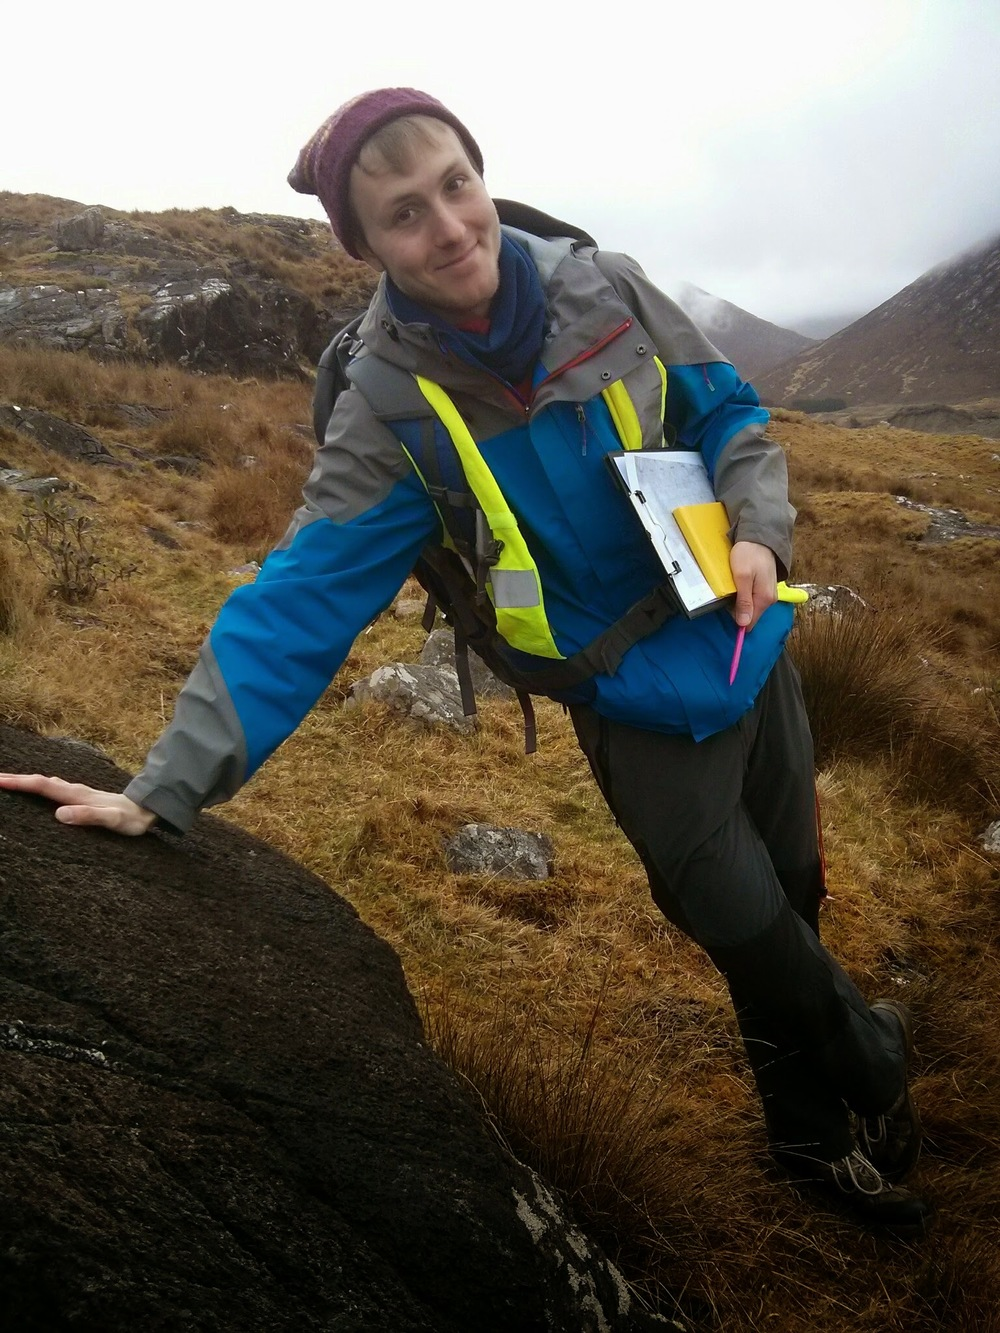 Tom Stanley - Recruiting and Outreach Coordinator   3rd Year Geology M.Geol. Student.  Tom is an exchange student from the University of Leeds, UK. He has focused his studies towards working in the mineral exploration sector, and acted as treasurer to the Leeds student chapter of the Society of Economic Geologists in 2013/14.